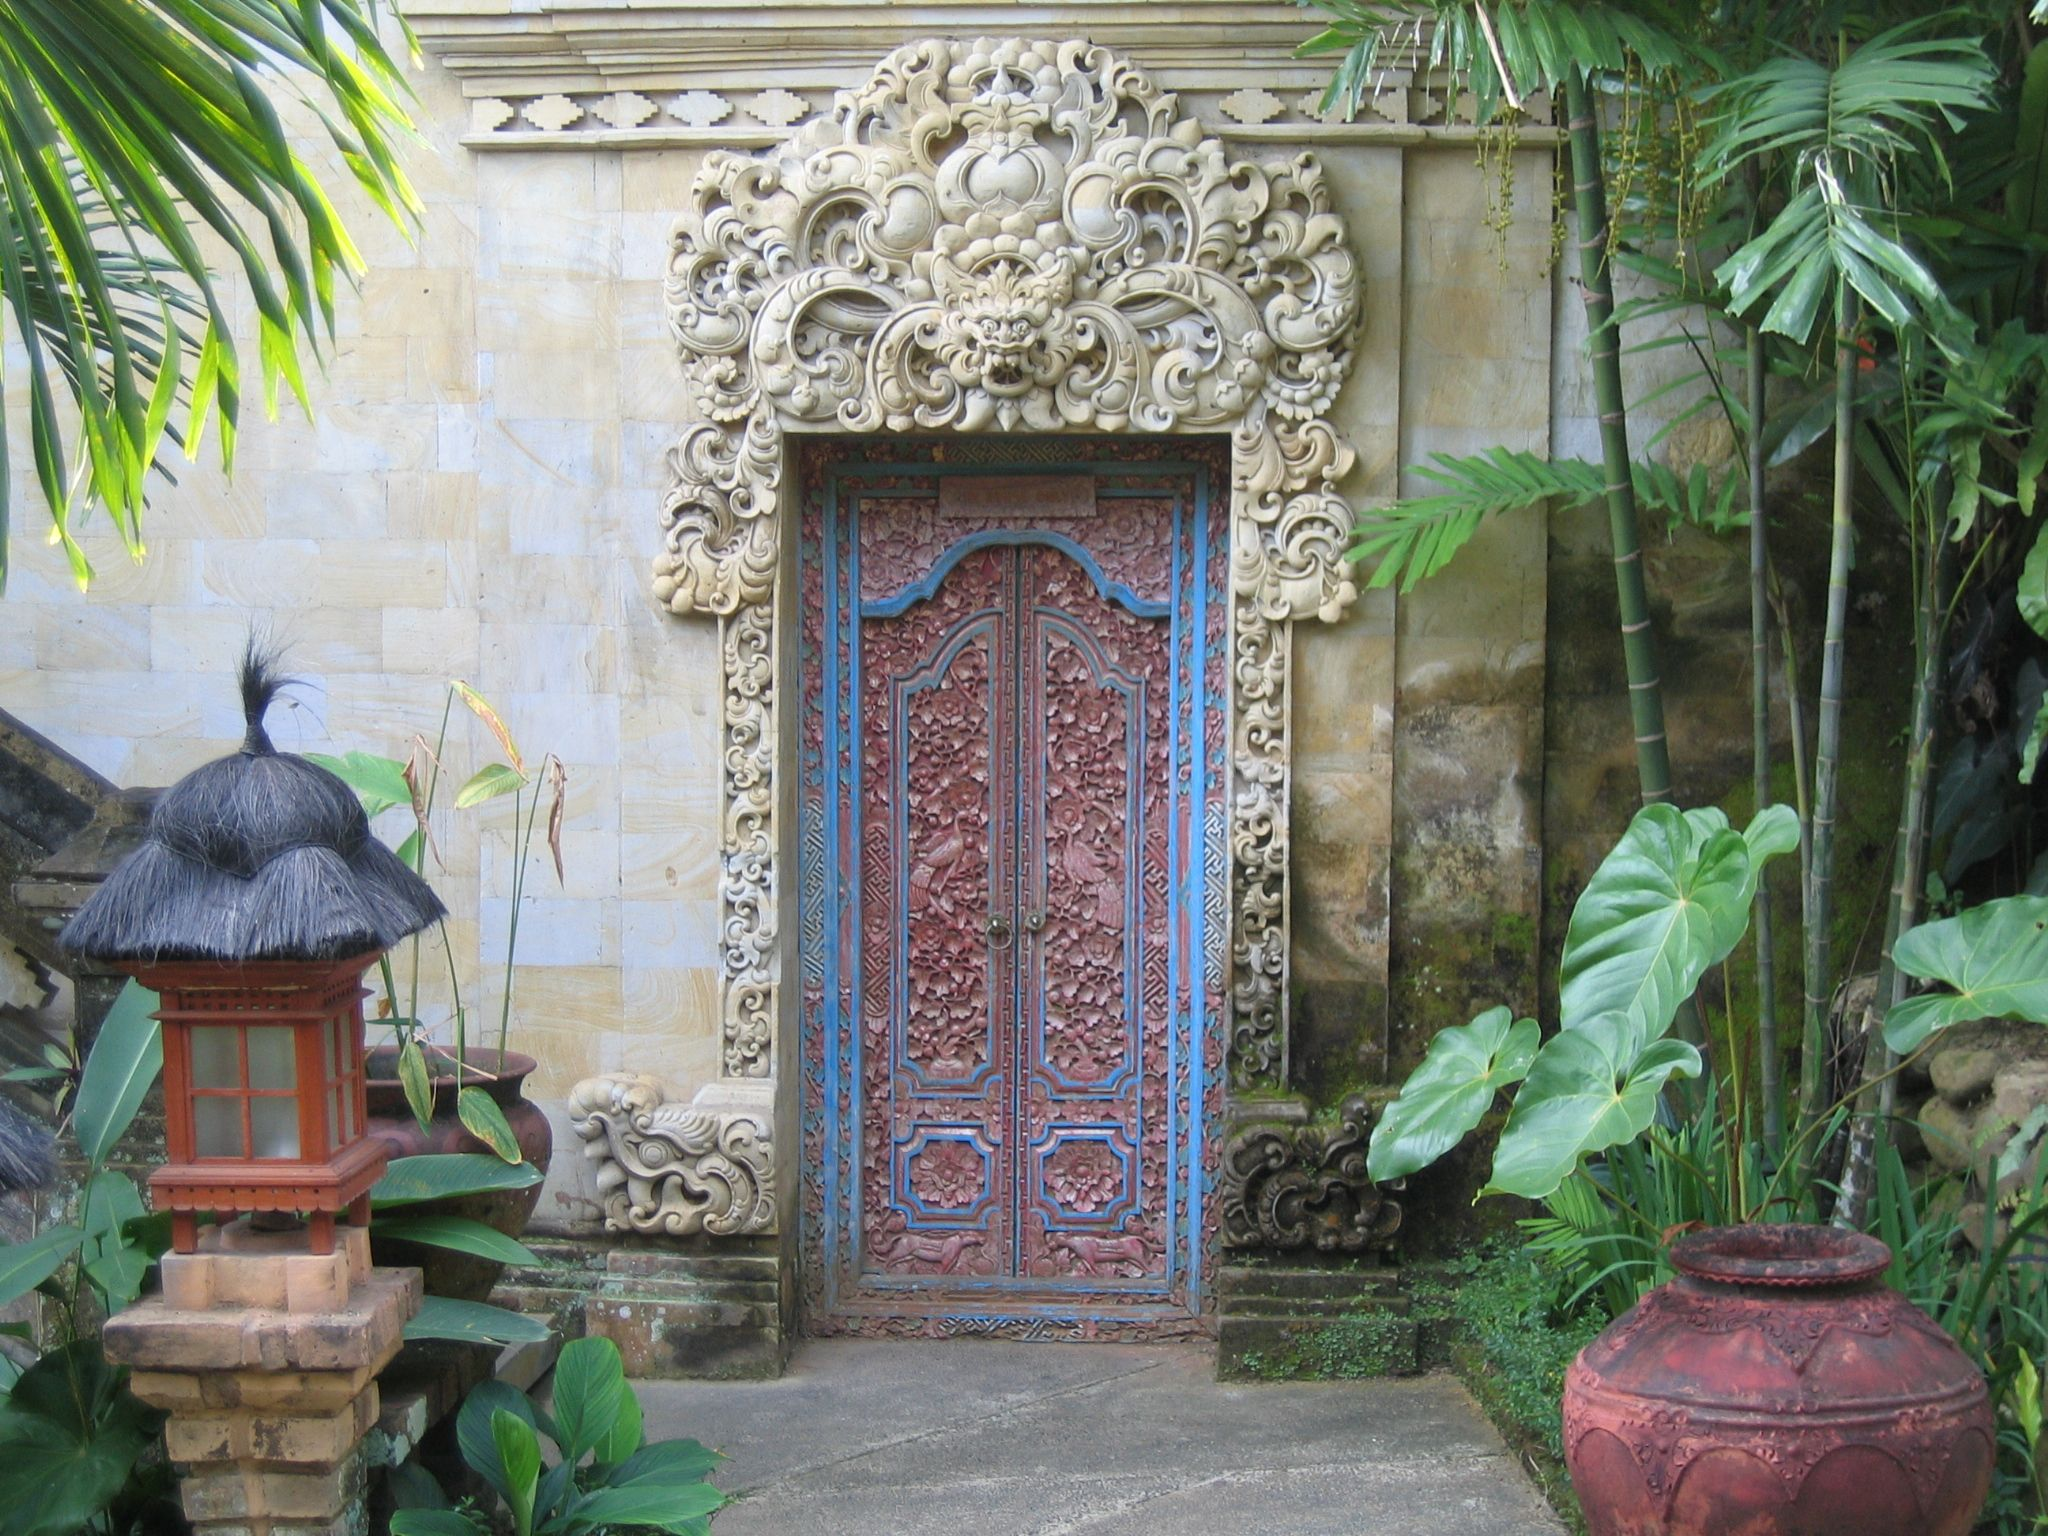 Balinese door & Balinese door | Travel Trips | Pinterest | Balinese Doors and Gates